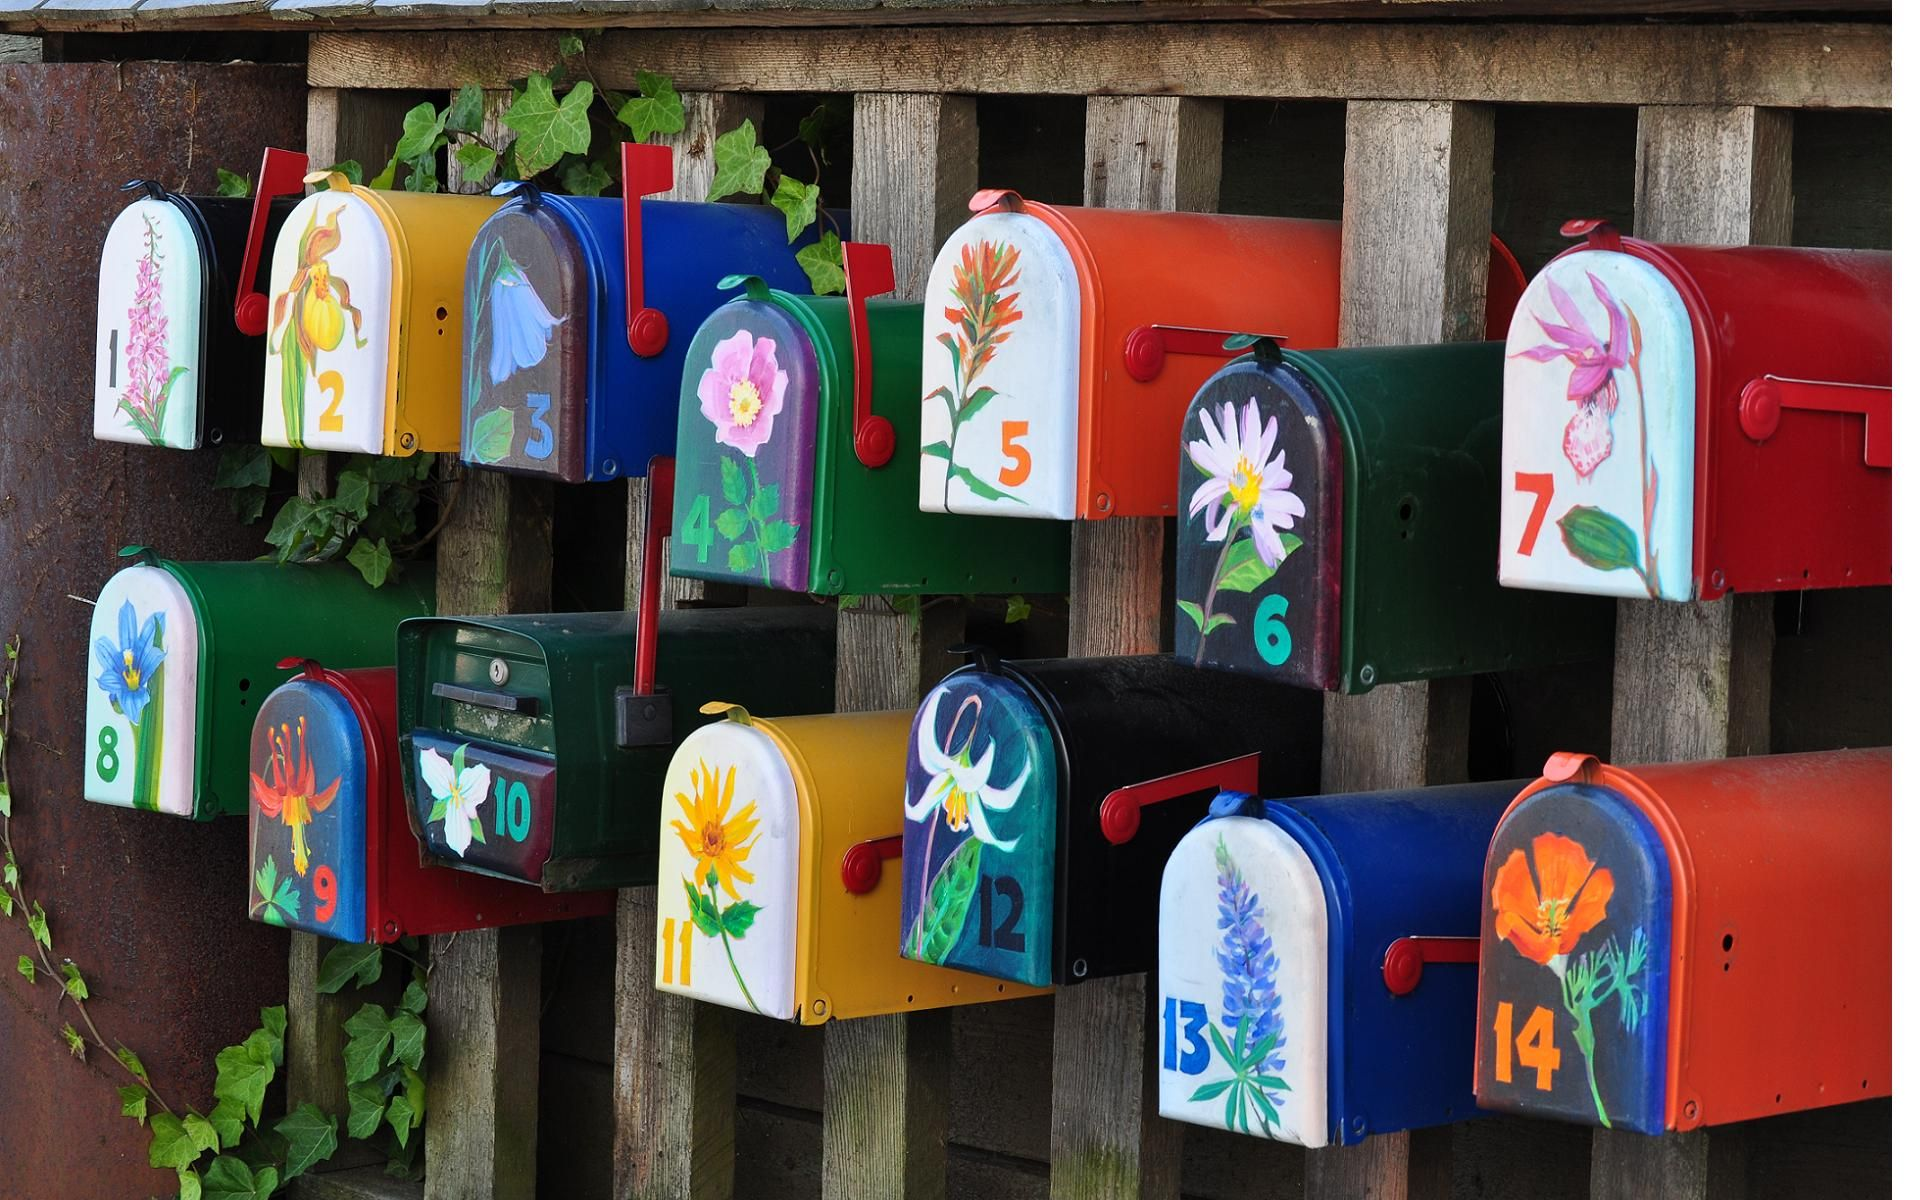 17 Best images about Mailboxes on Pinterest | Pistols, Old mailbox ...